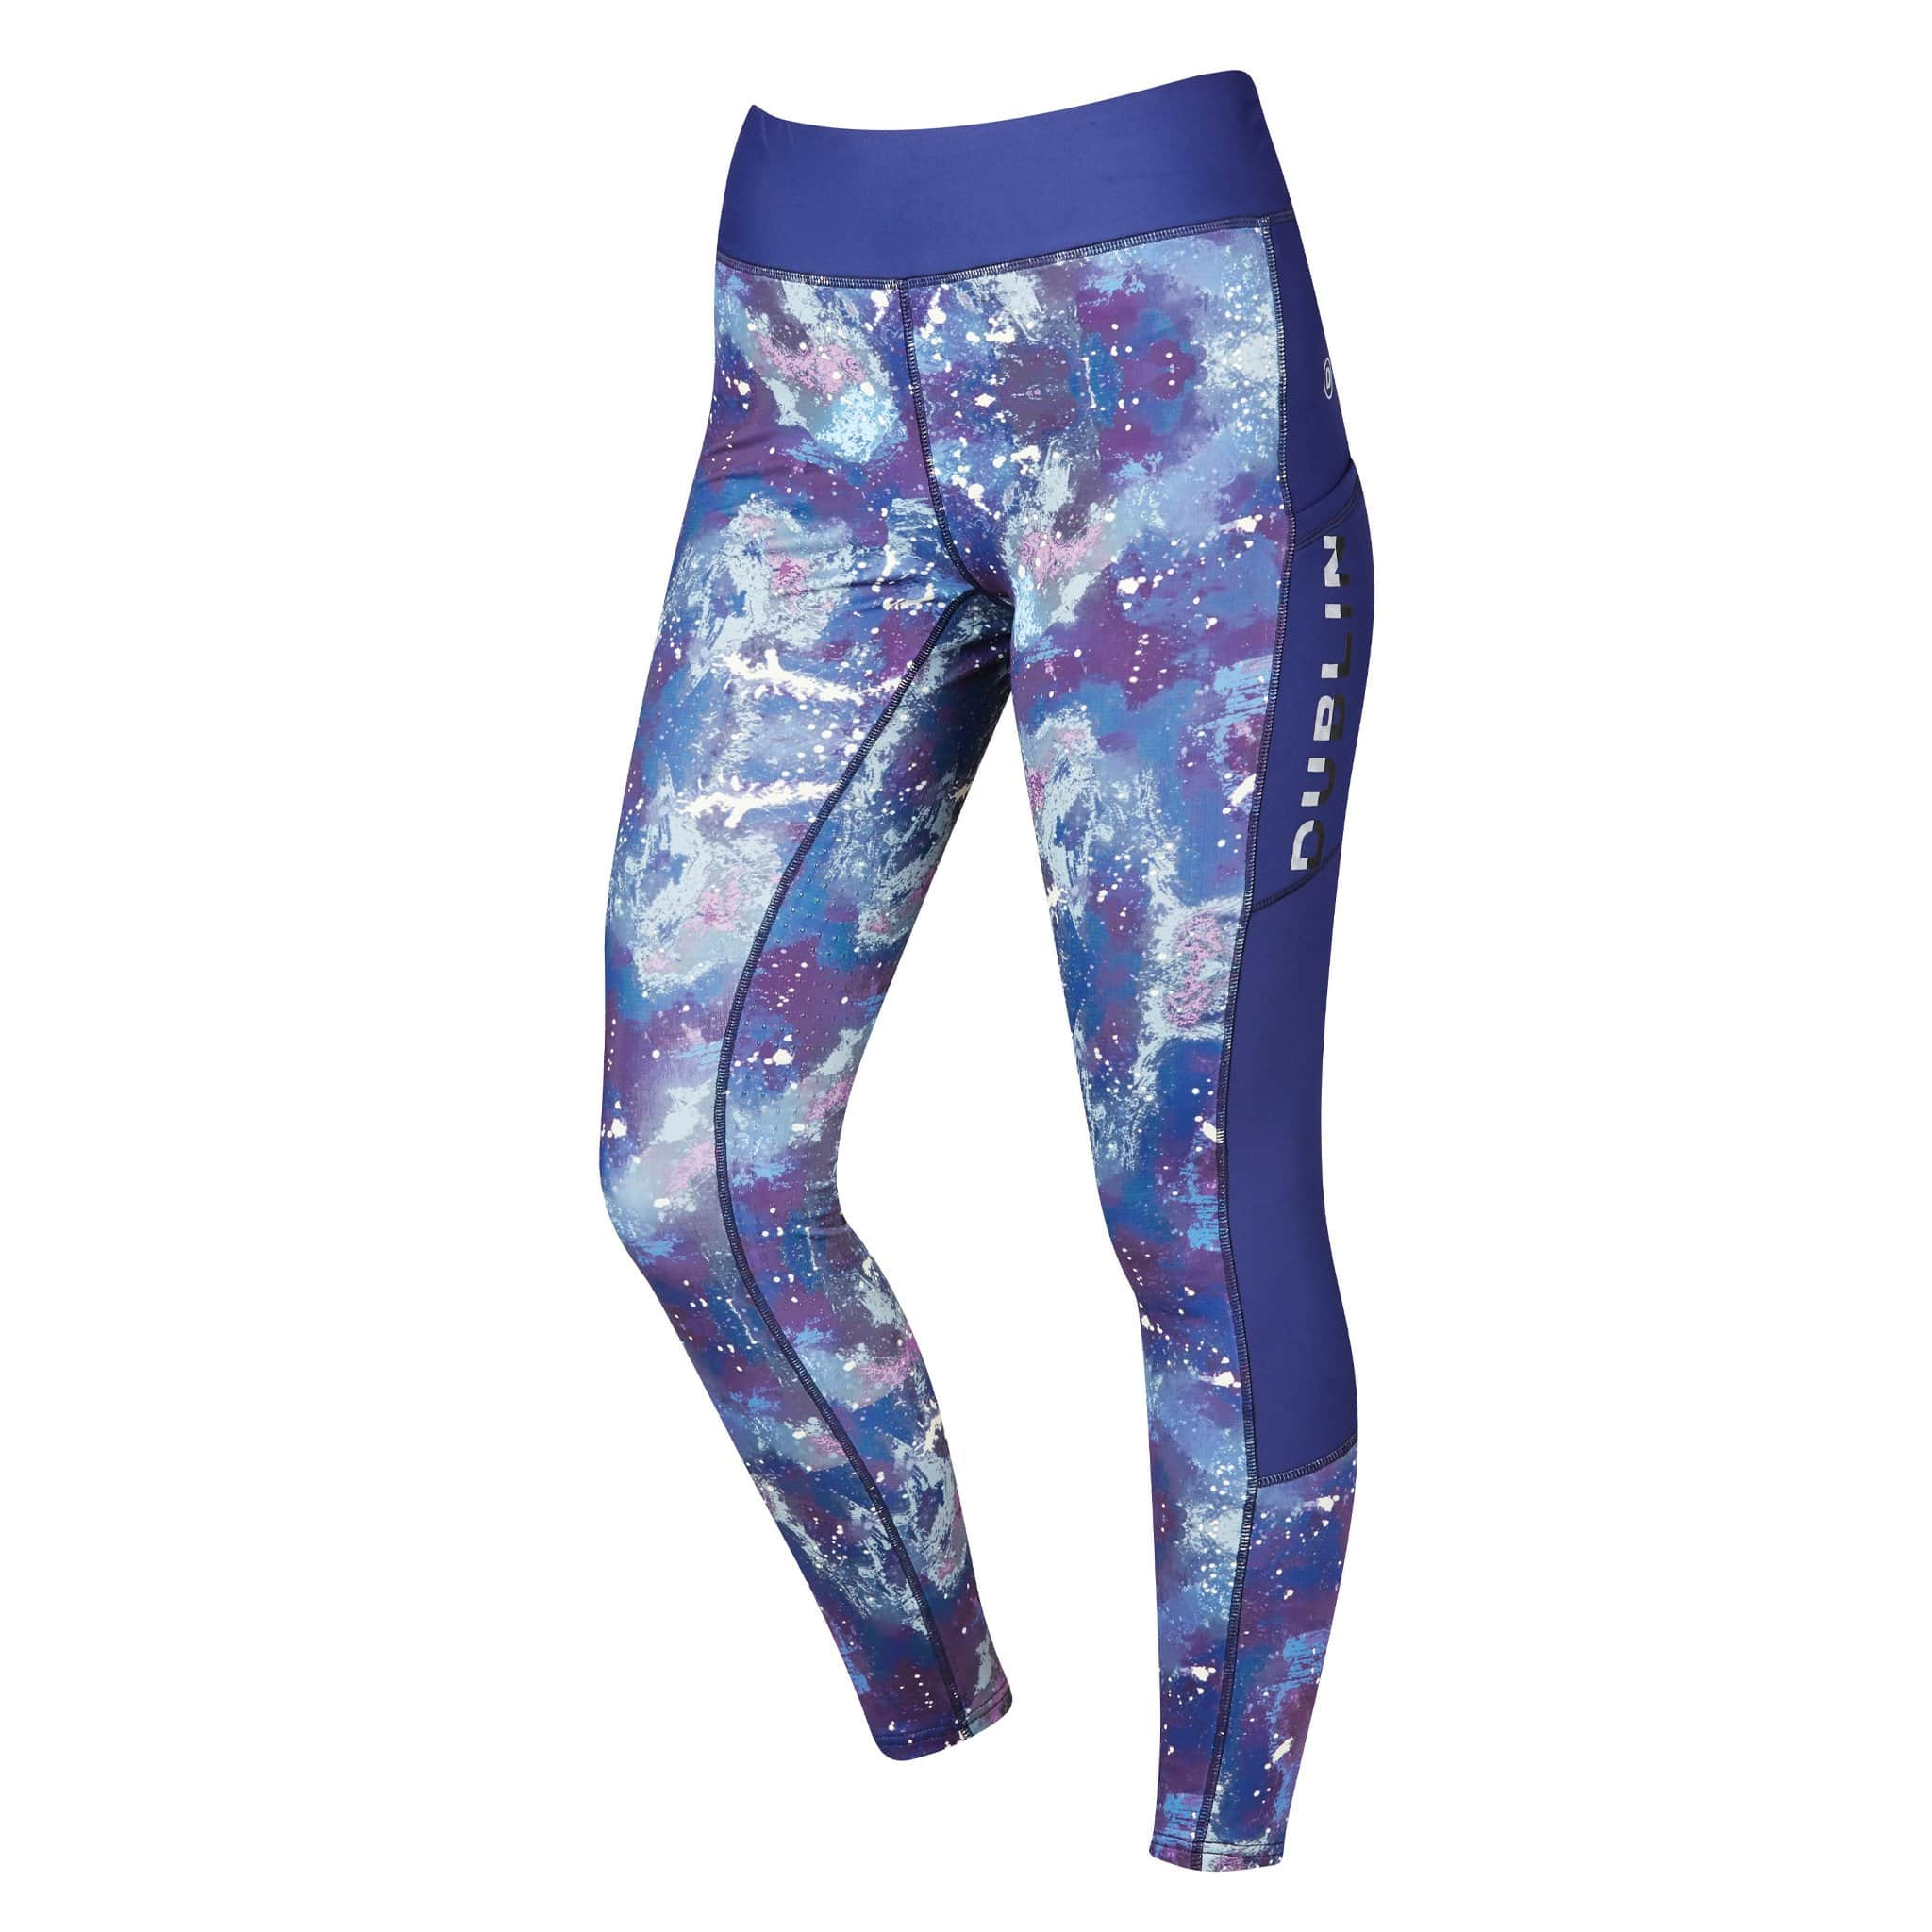 Dublin Gabriella Sculpt Printed Silicone Full Seat Riding Tights 1002997002 Indigo Blue Front View